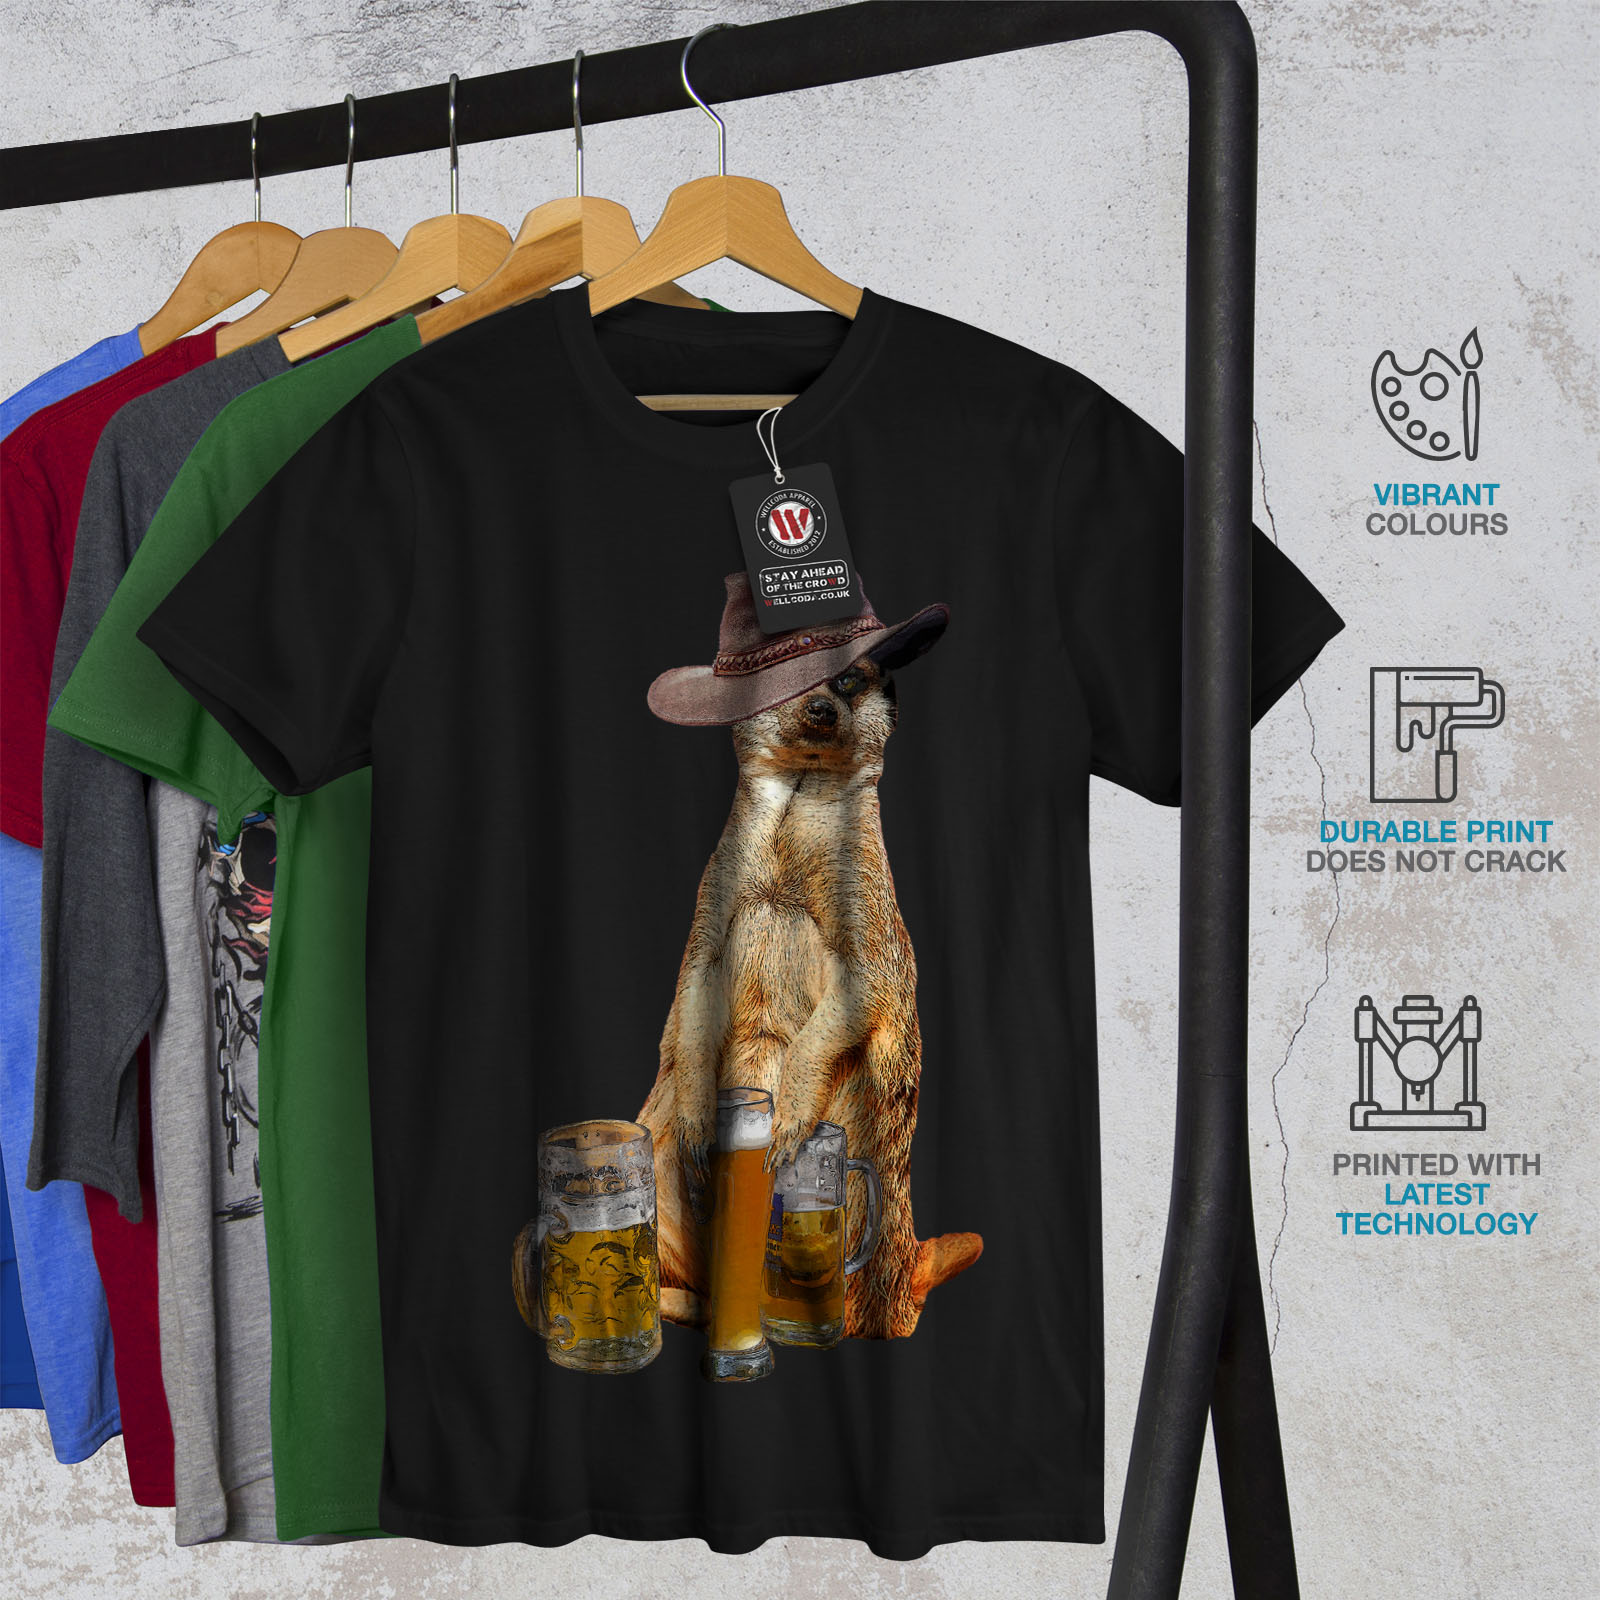 Wellcoda-Drunk-Animal-Beer-Mens-T-shirt-Funny-Graphic-Design-Printed-Tee thumbnail 6